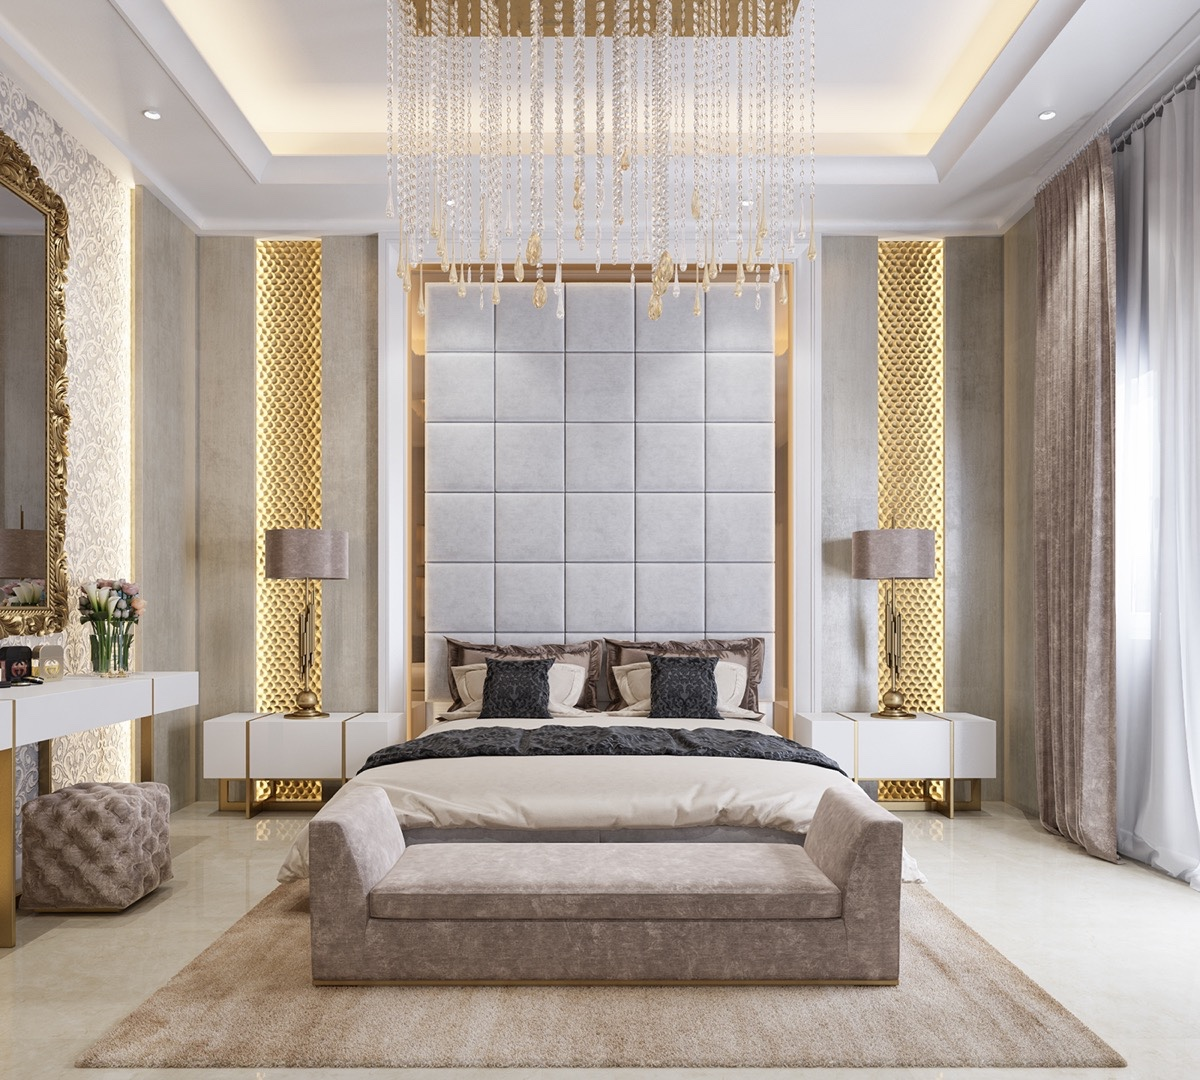 3 kind of elegant bedroom design ideas includes a brilliant decor that very suitable to apply - Magnificent luxury bedroom design ideas ...